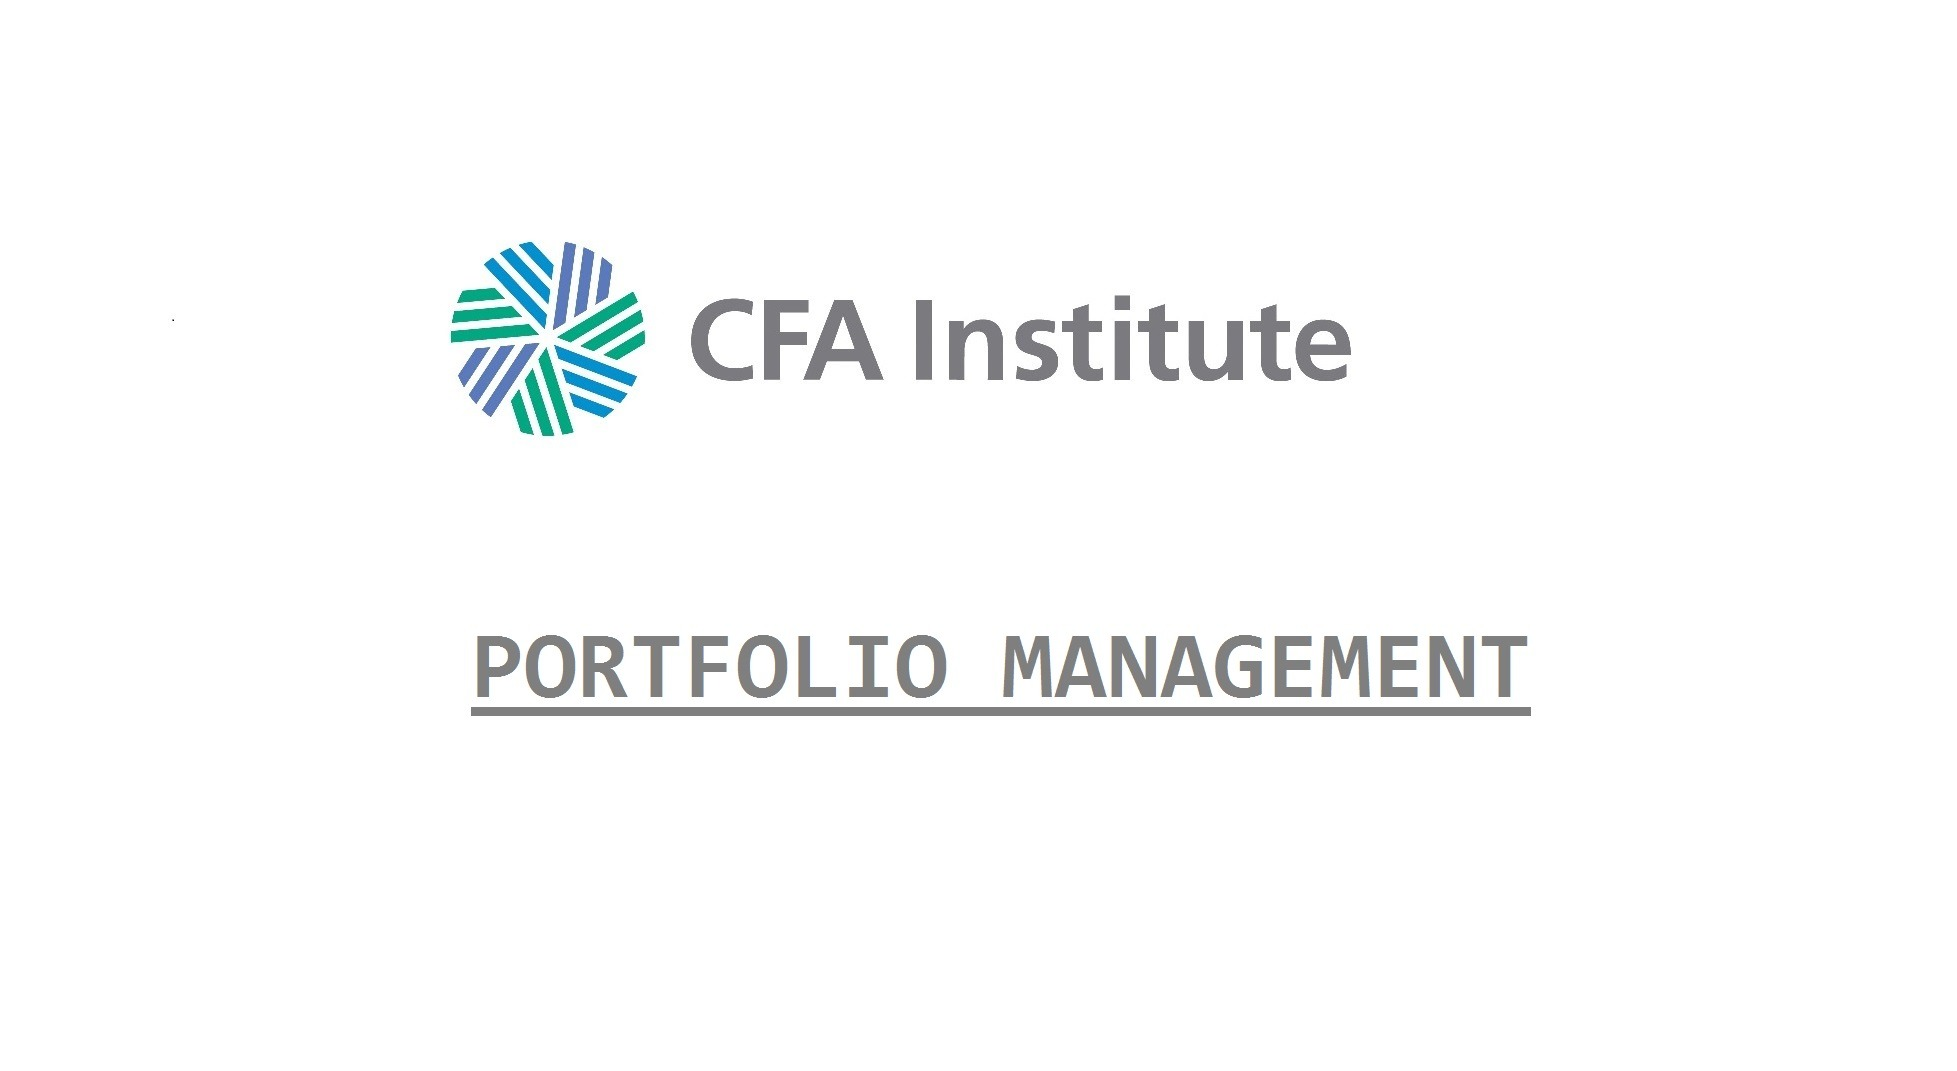 Cfa portfolio management